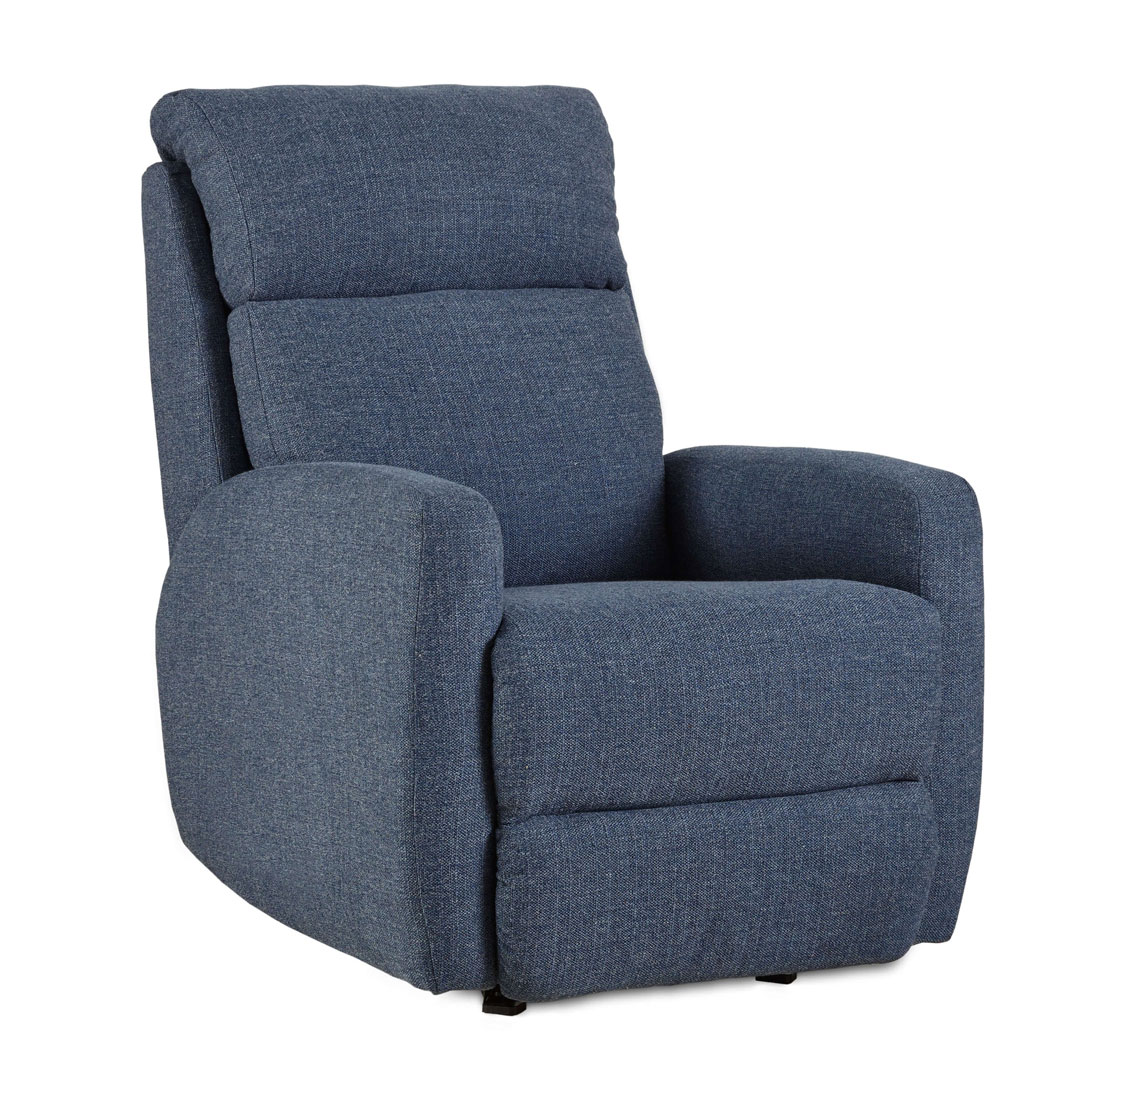 1144-primo-in-285-60-cabana-navy-recliner-sweep_web